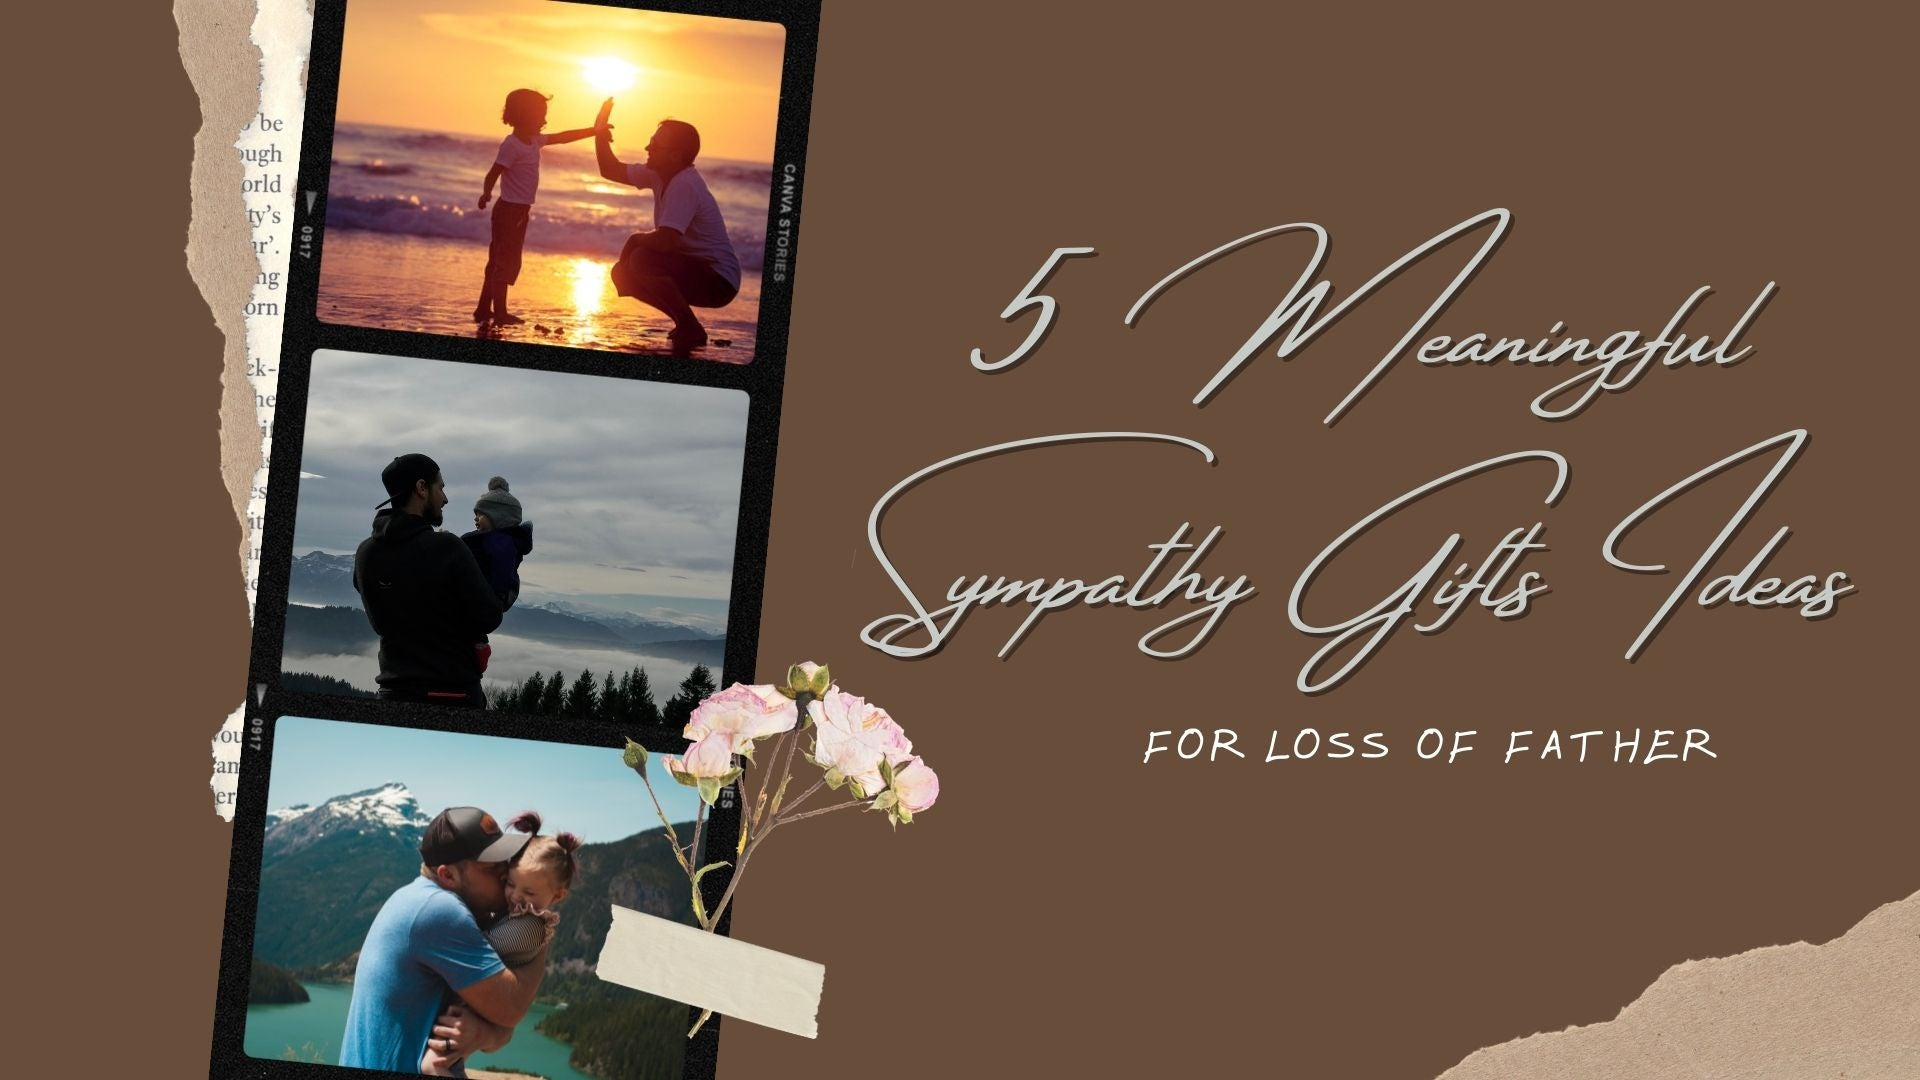 5 Meaningful Sympathy Gifts Ideas for Loss of Father